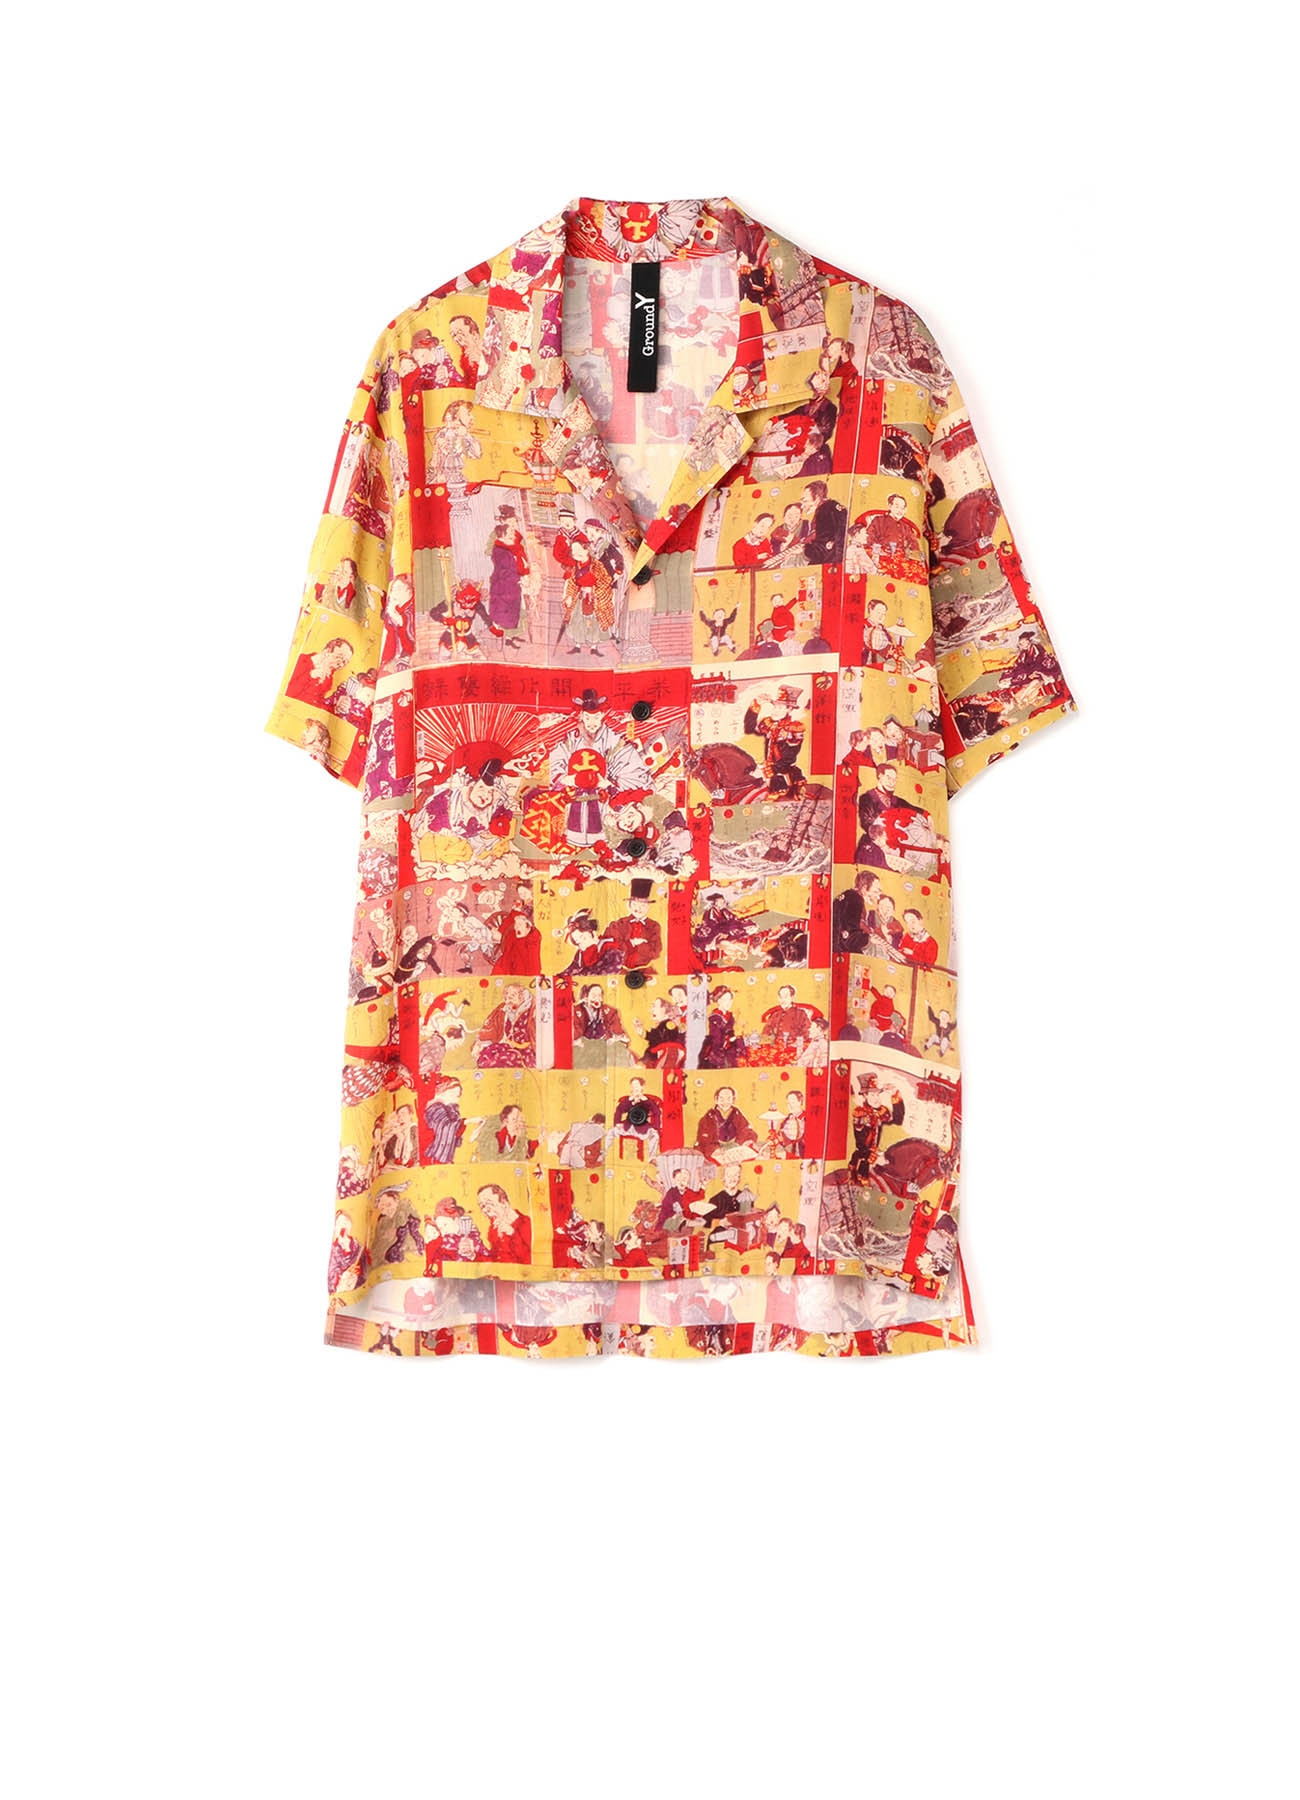 Kawanabe Kyosai-Kawanabe Kyosai-Collaboration Short Sleeves Shirt